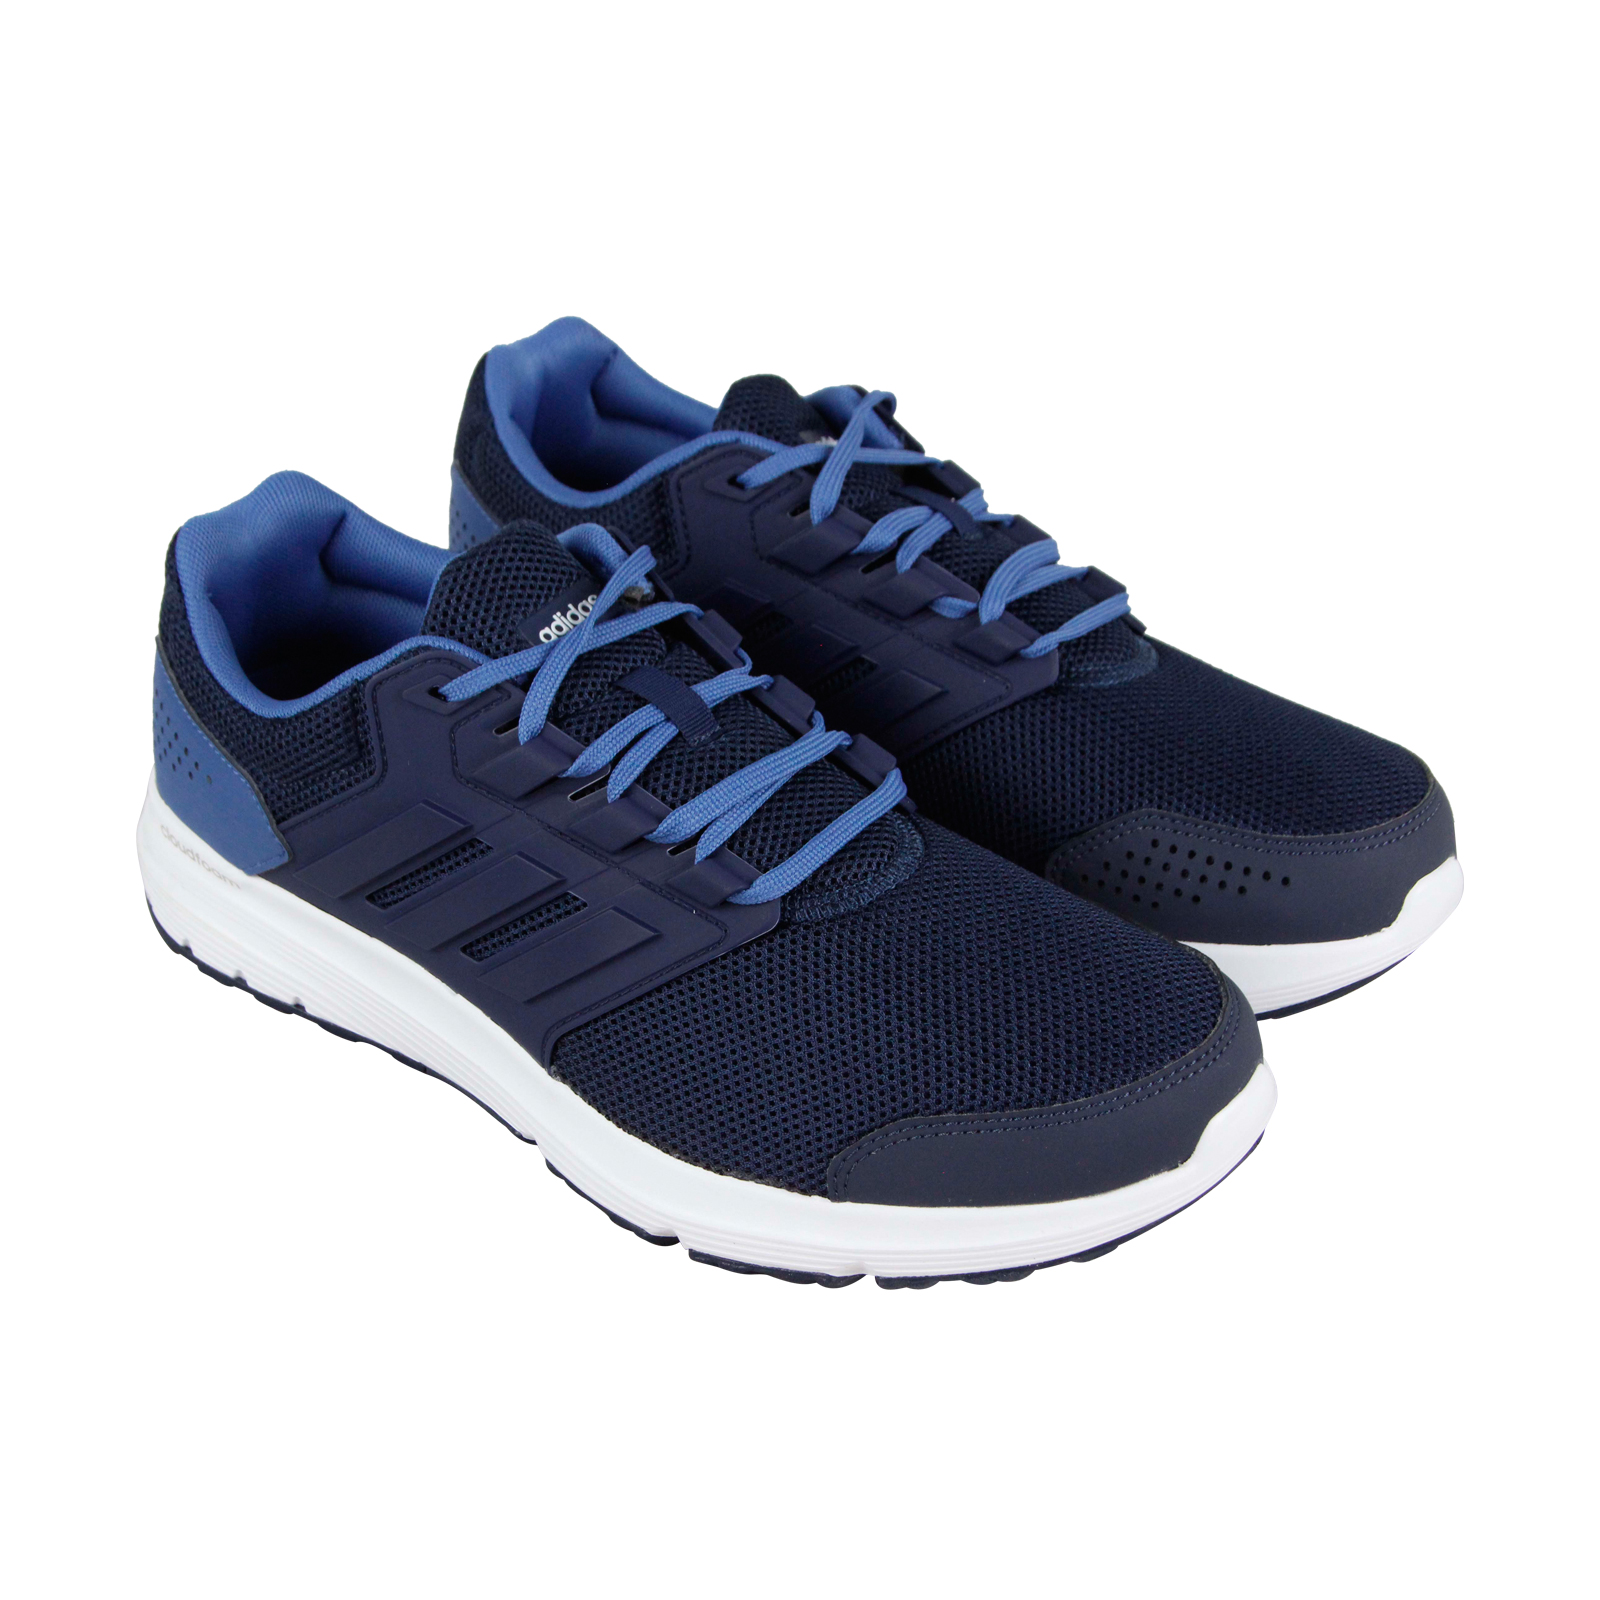 a54c517c34a Adidas Adidas Galaxy 4 M Mens Blue Mesh Athletic Lace Up Running ...